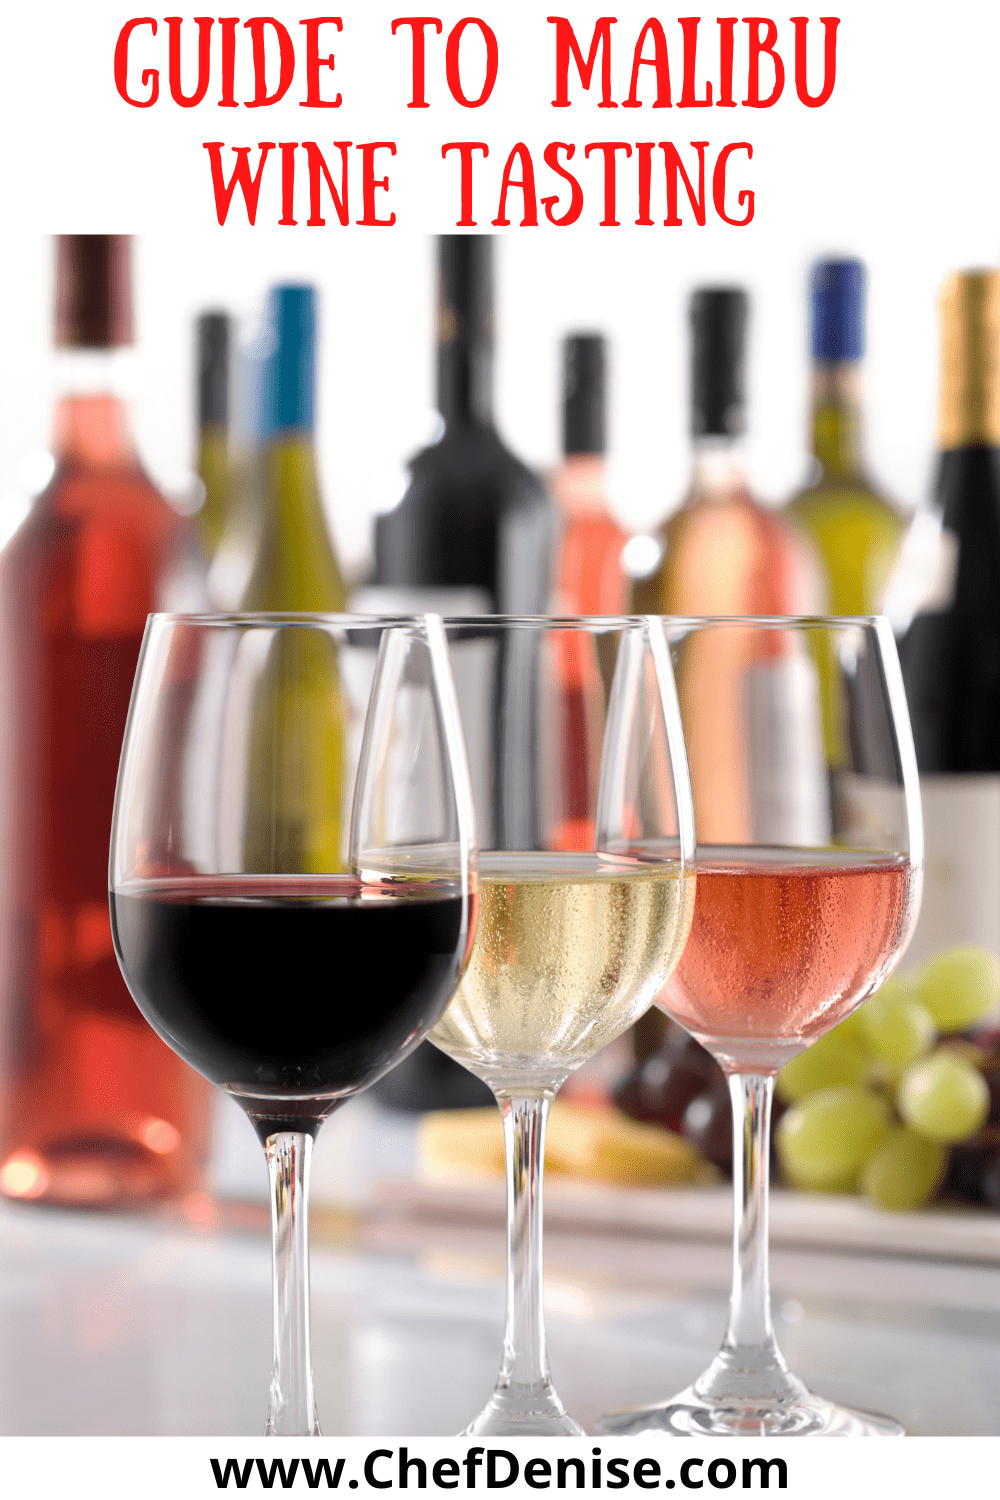 Pin for Guide to Malibu Wine Tasting